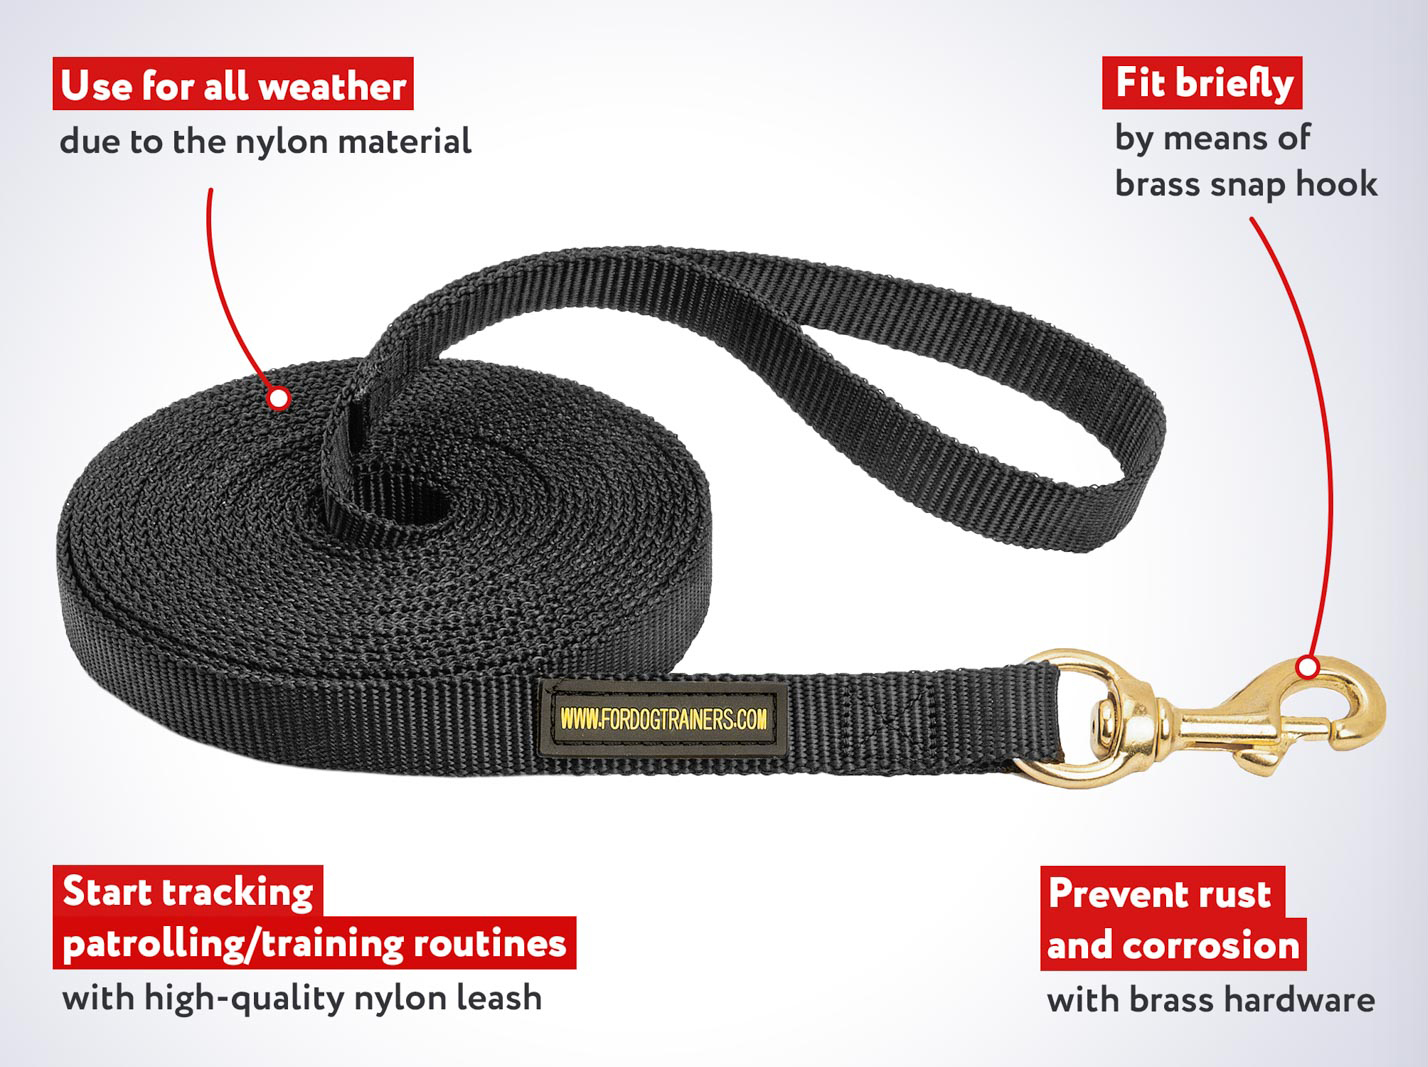 Best for Tracking Nylon Mastiff Dog Leash